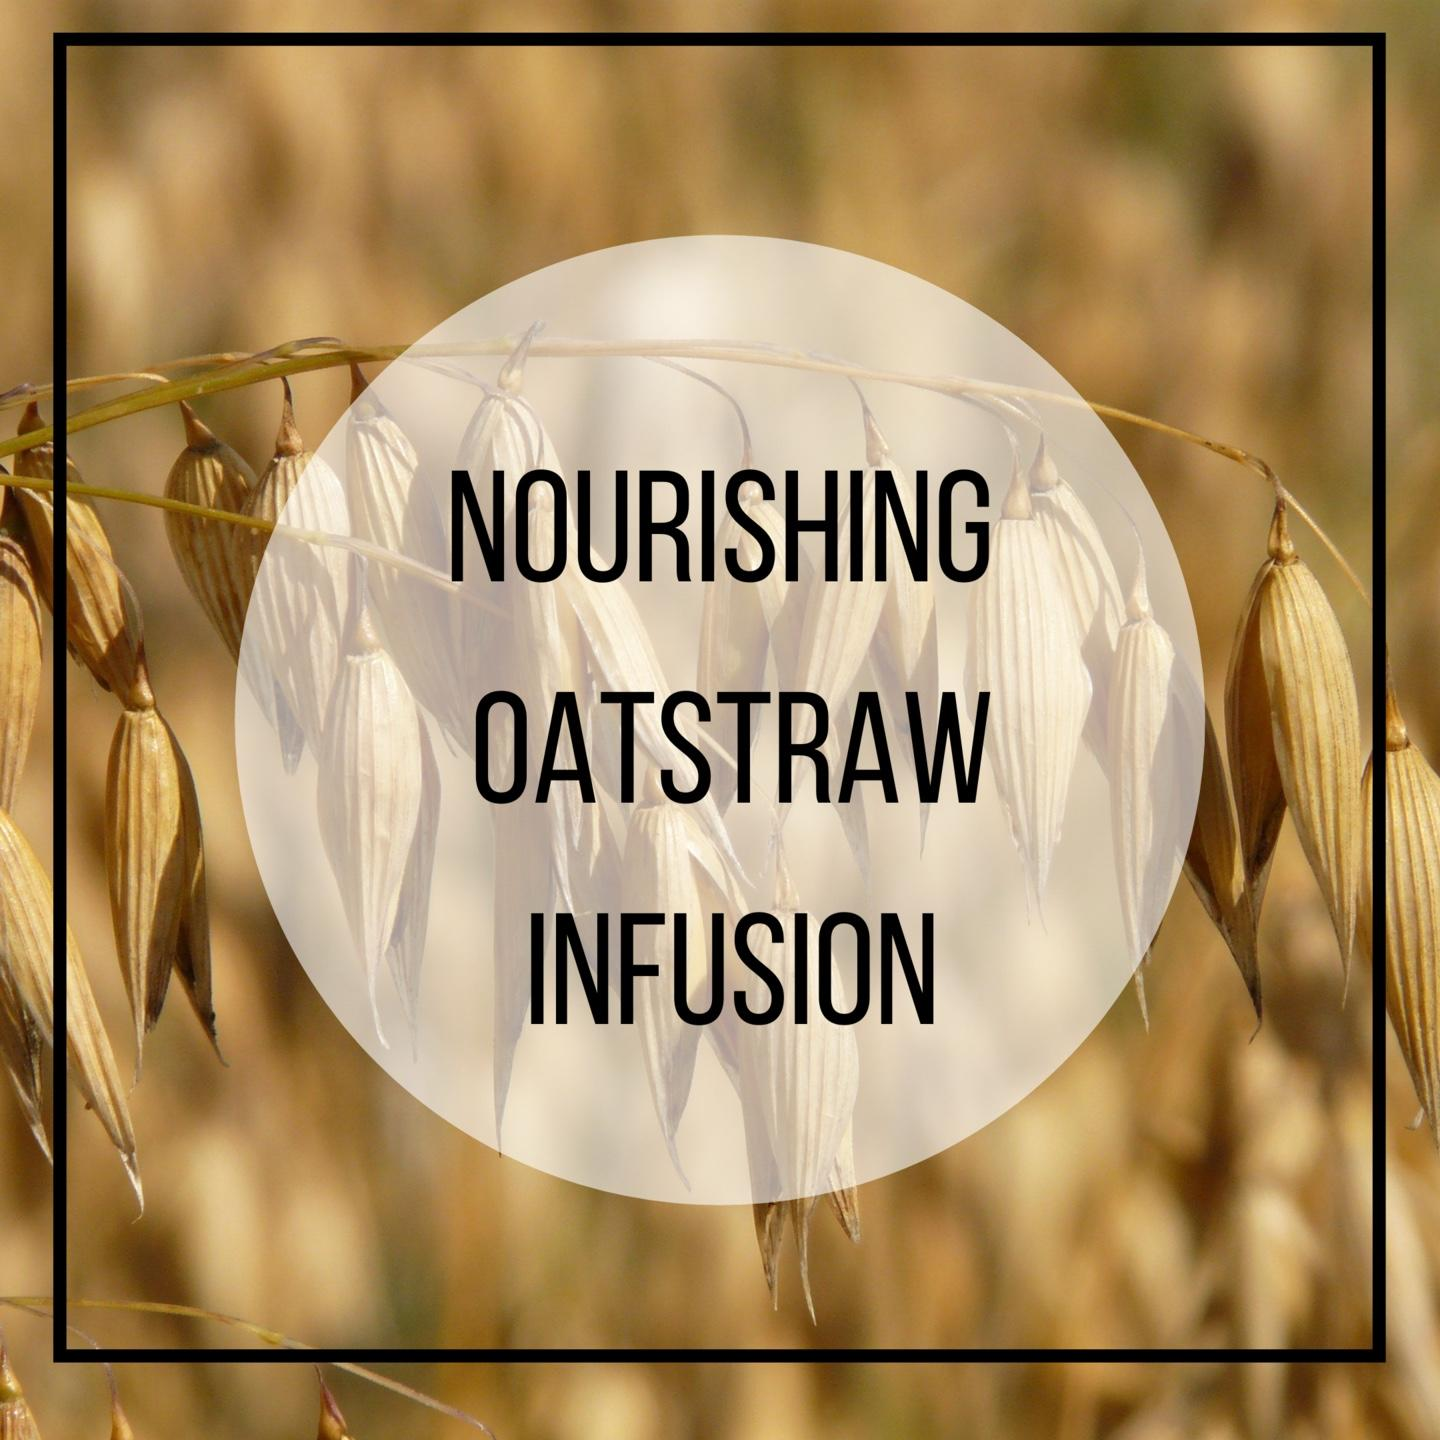 oatstraw tonic herbal remedies, herbal tea, nervous system